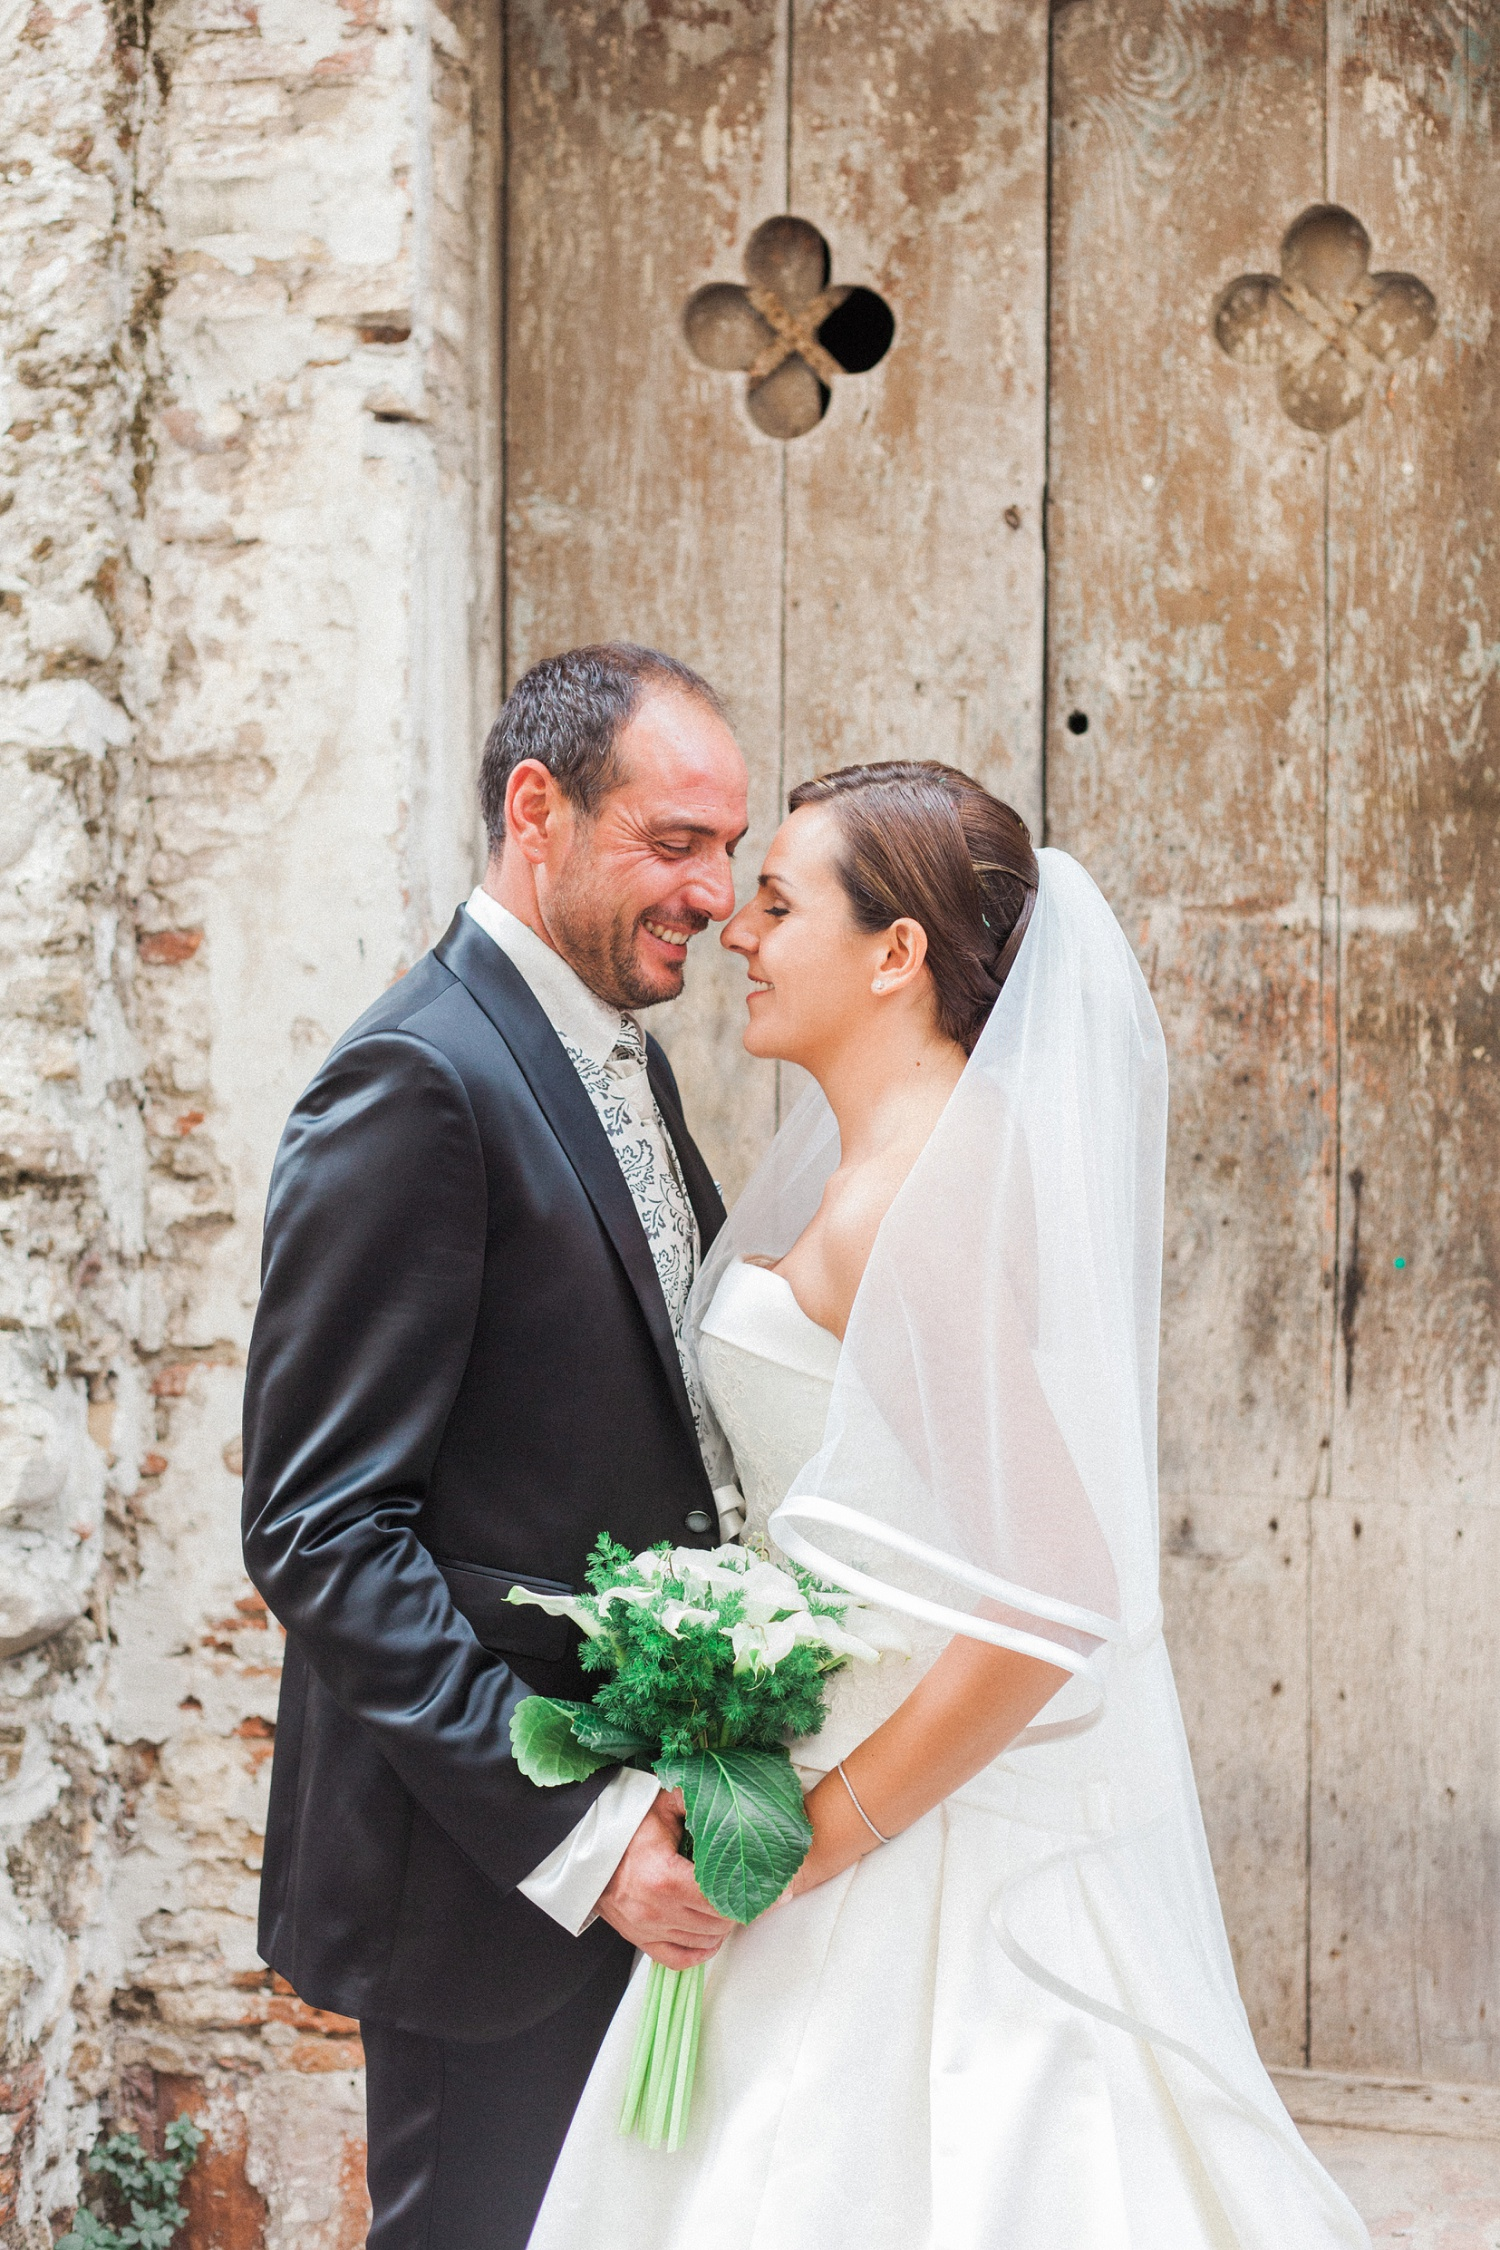 Italian bride and groom stand together in front of a beautiful old door during their wedding at the Convivium Hotel in Vasto Abruzzo